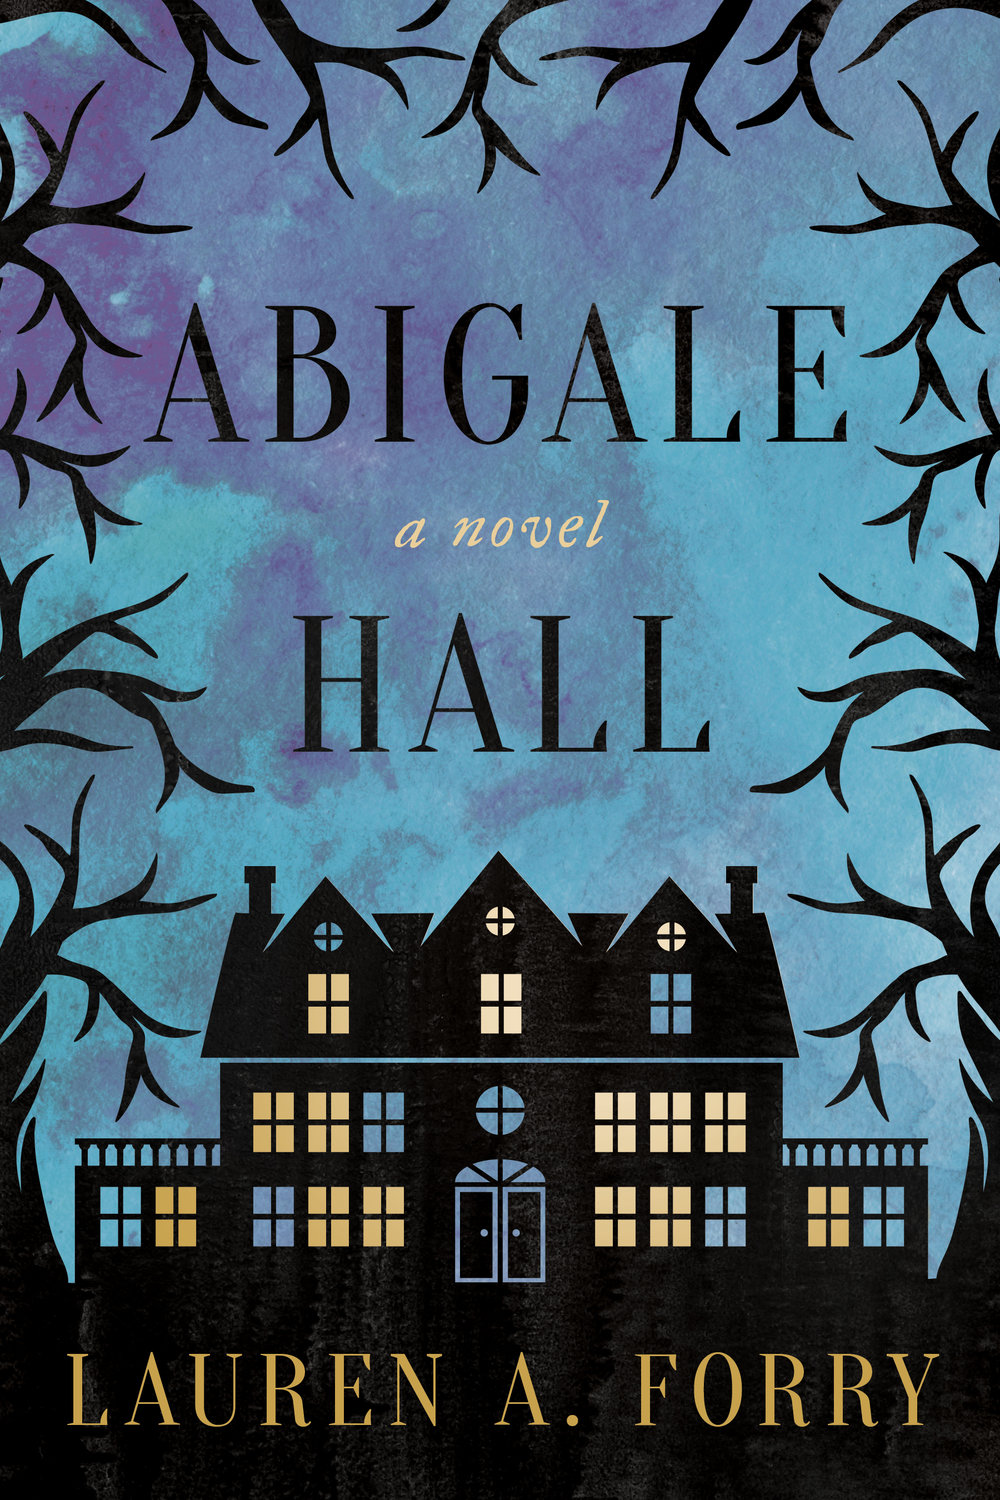 Abigale Hall FINAL.jpg